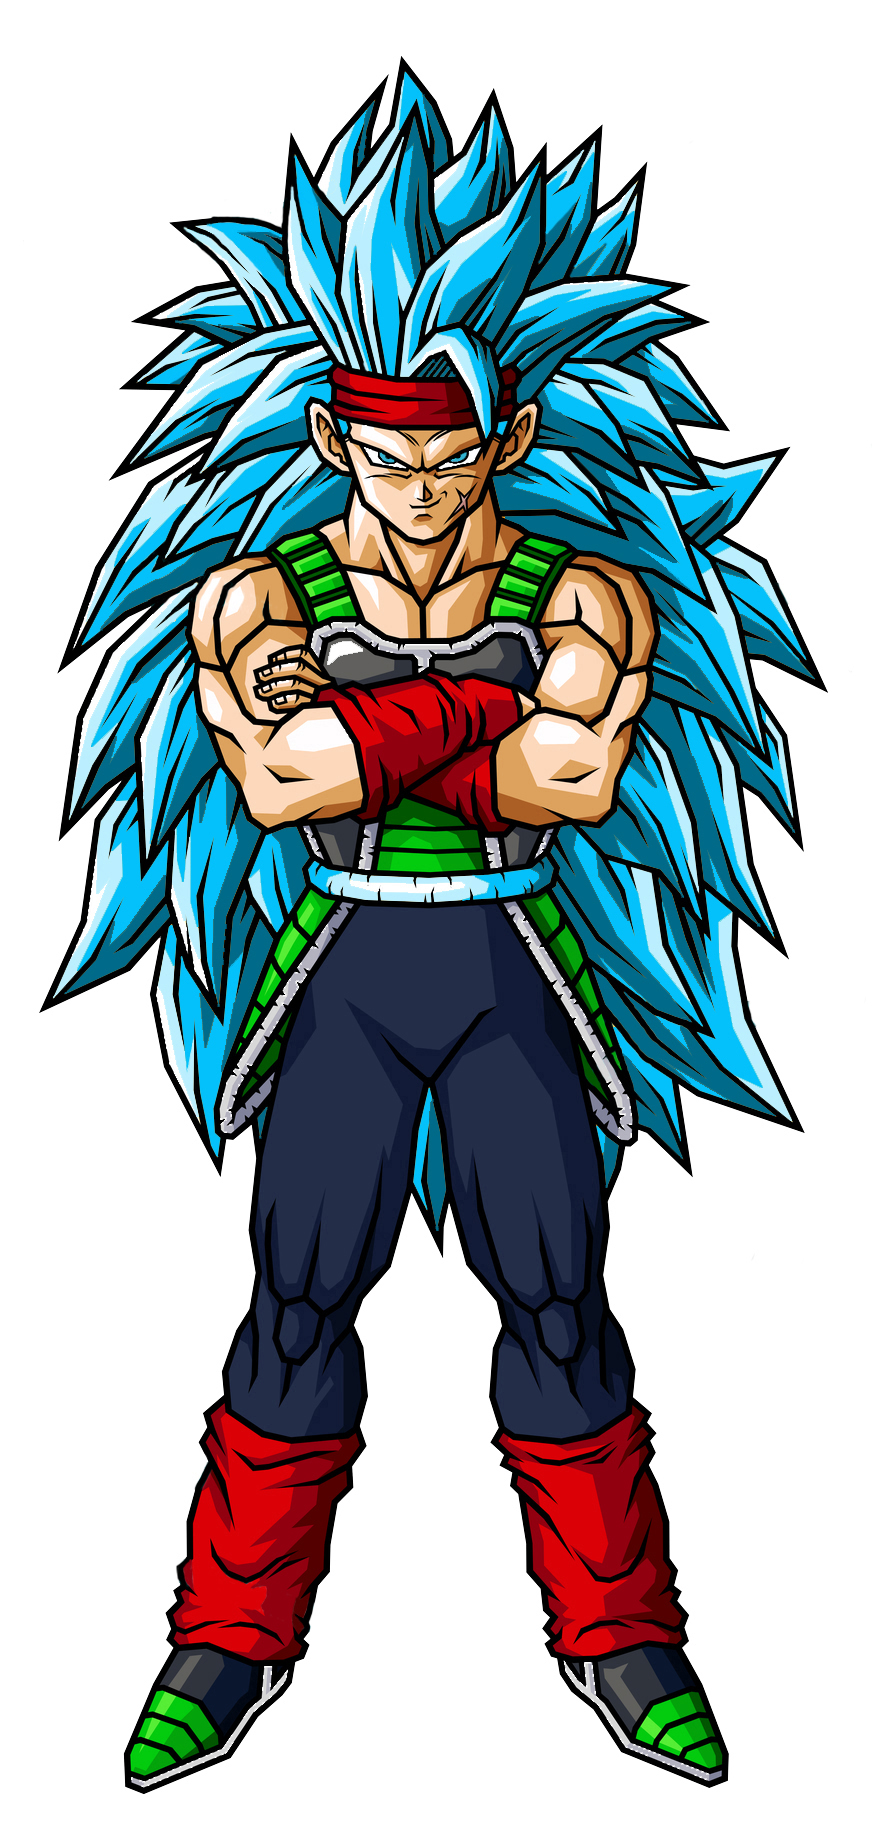 Bardock Ssjg3 by cossiokpo on DeviantArt